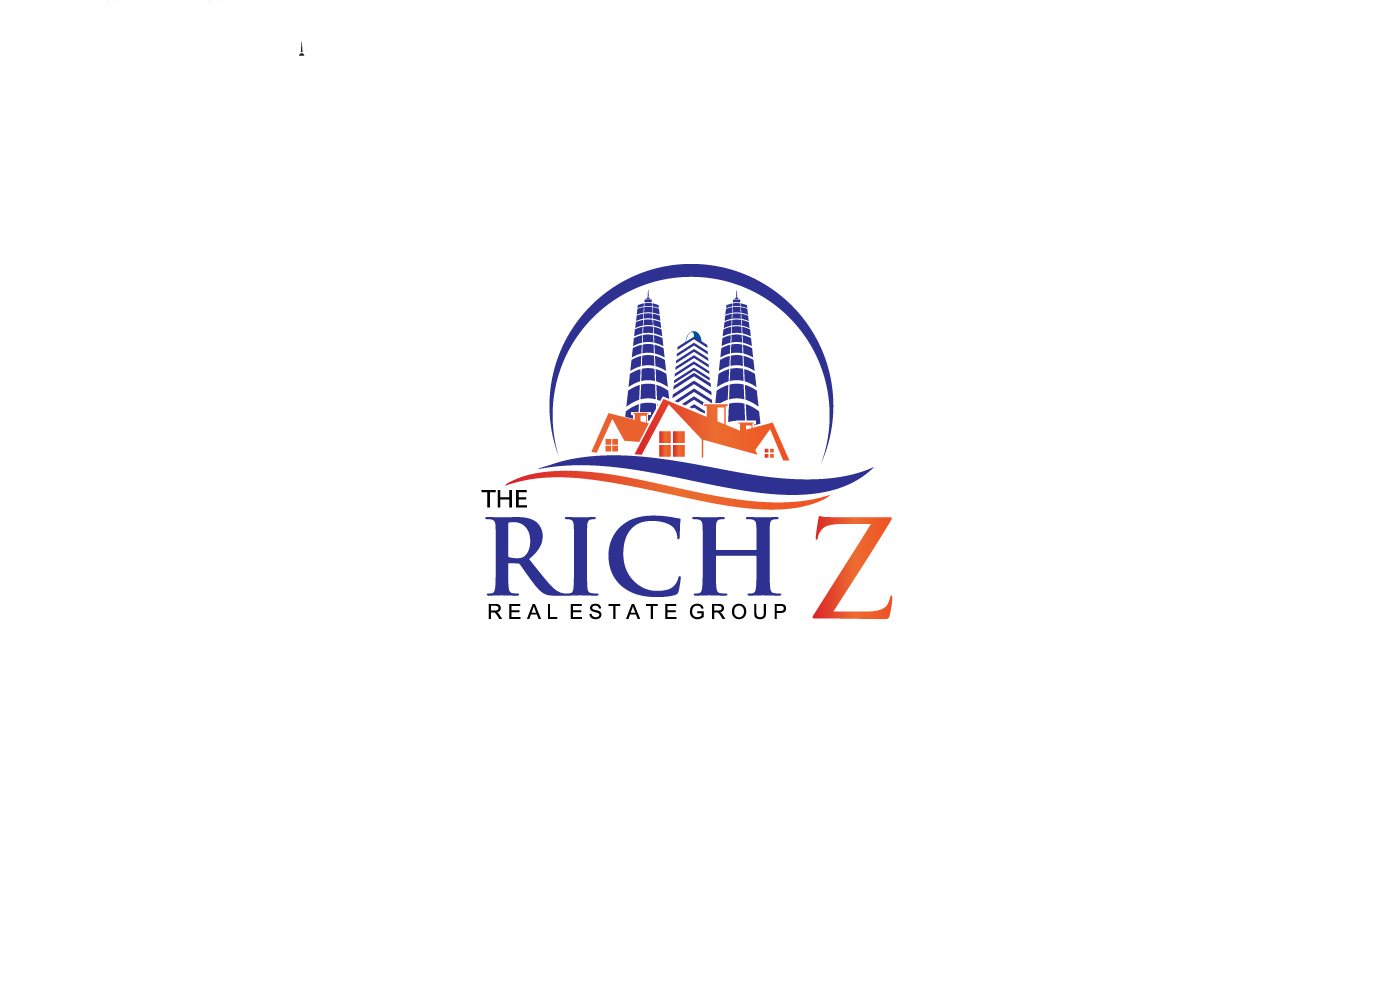 Logo Design by find_finder - Entry No. 41 in the Logo Design Contest The Rich Z. Real Estate Group Logo Design.